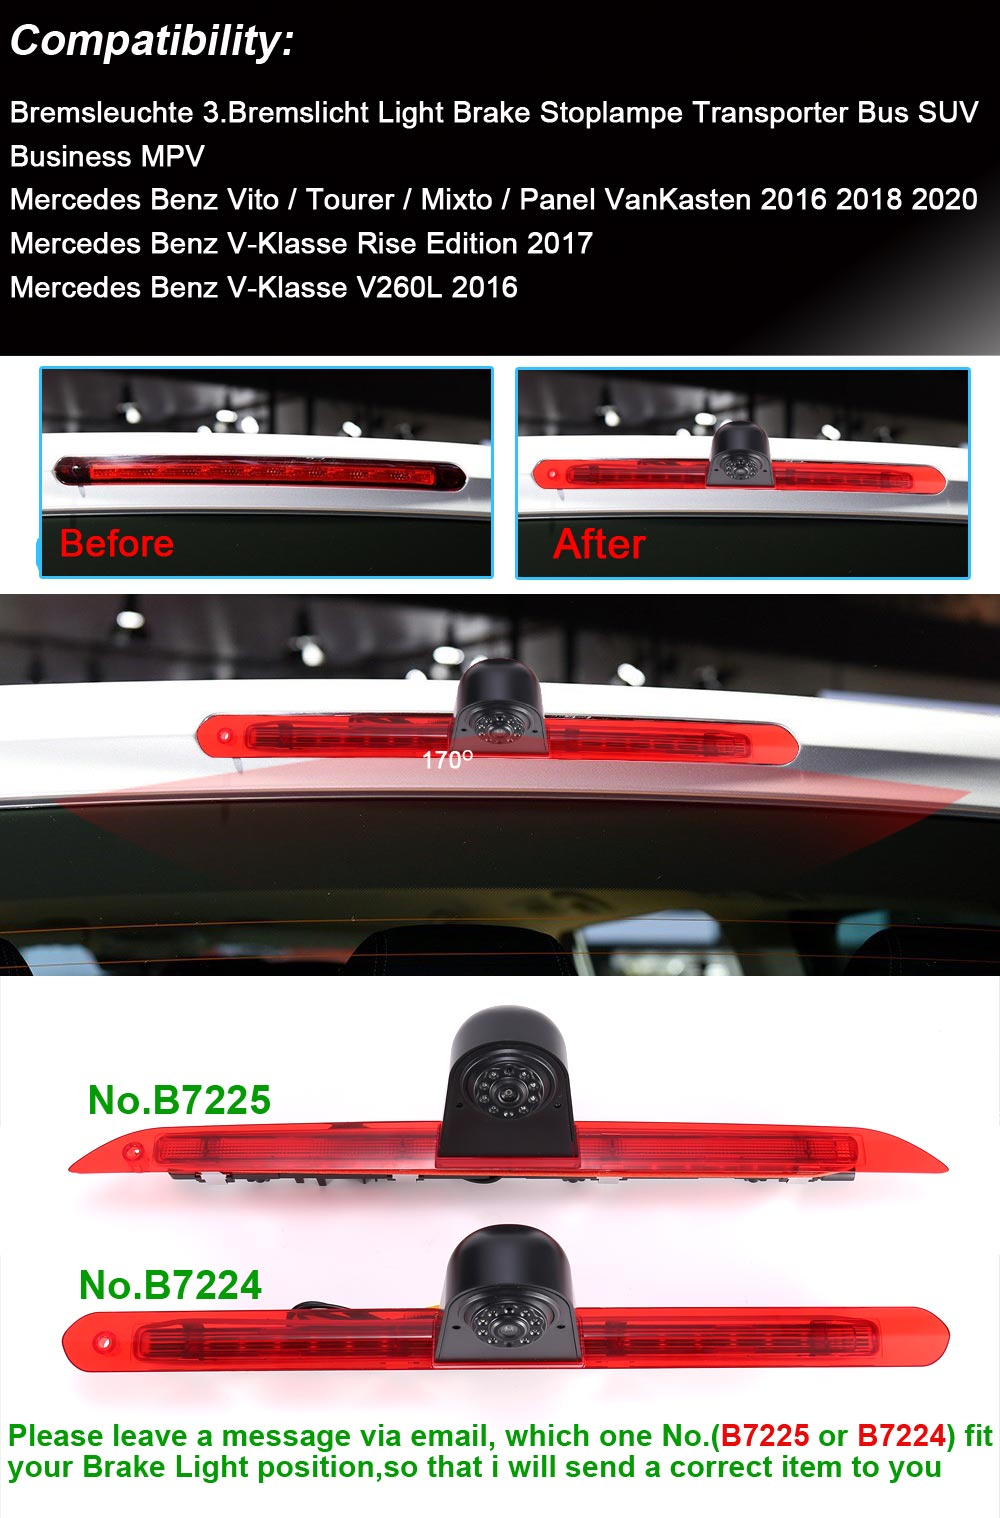 hd parking car camera for mercedes benz vito tourer mixto panel vankasten centre high mount stop lamp parking light vehicle camera aliexpress aliexpress